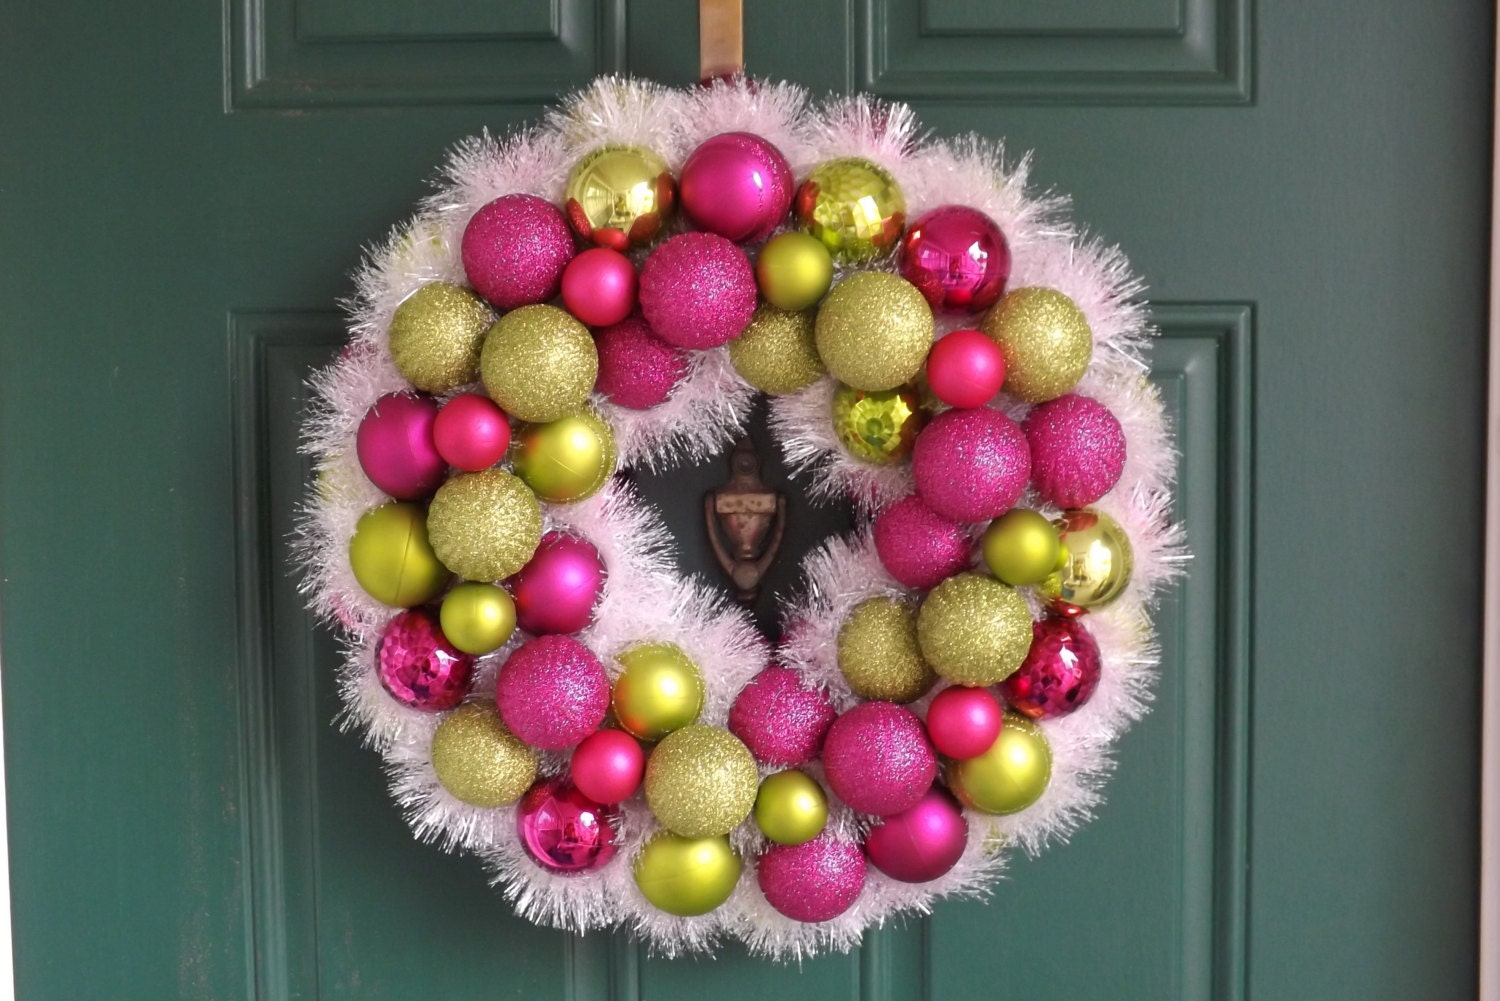 Christmas Lime Green and Pink Ornament Wreath with White Tinsel Garland - NOLACraftsbyDesign